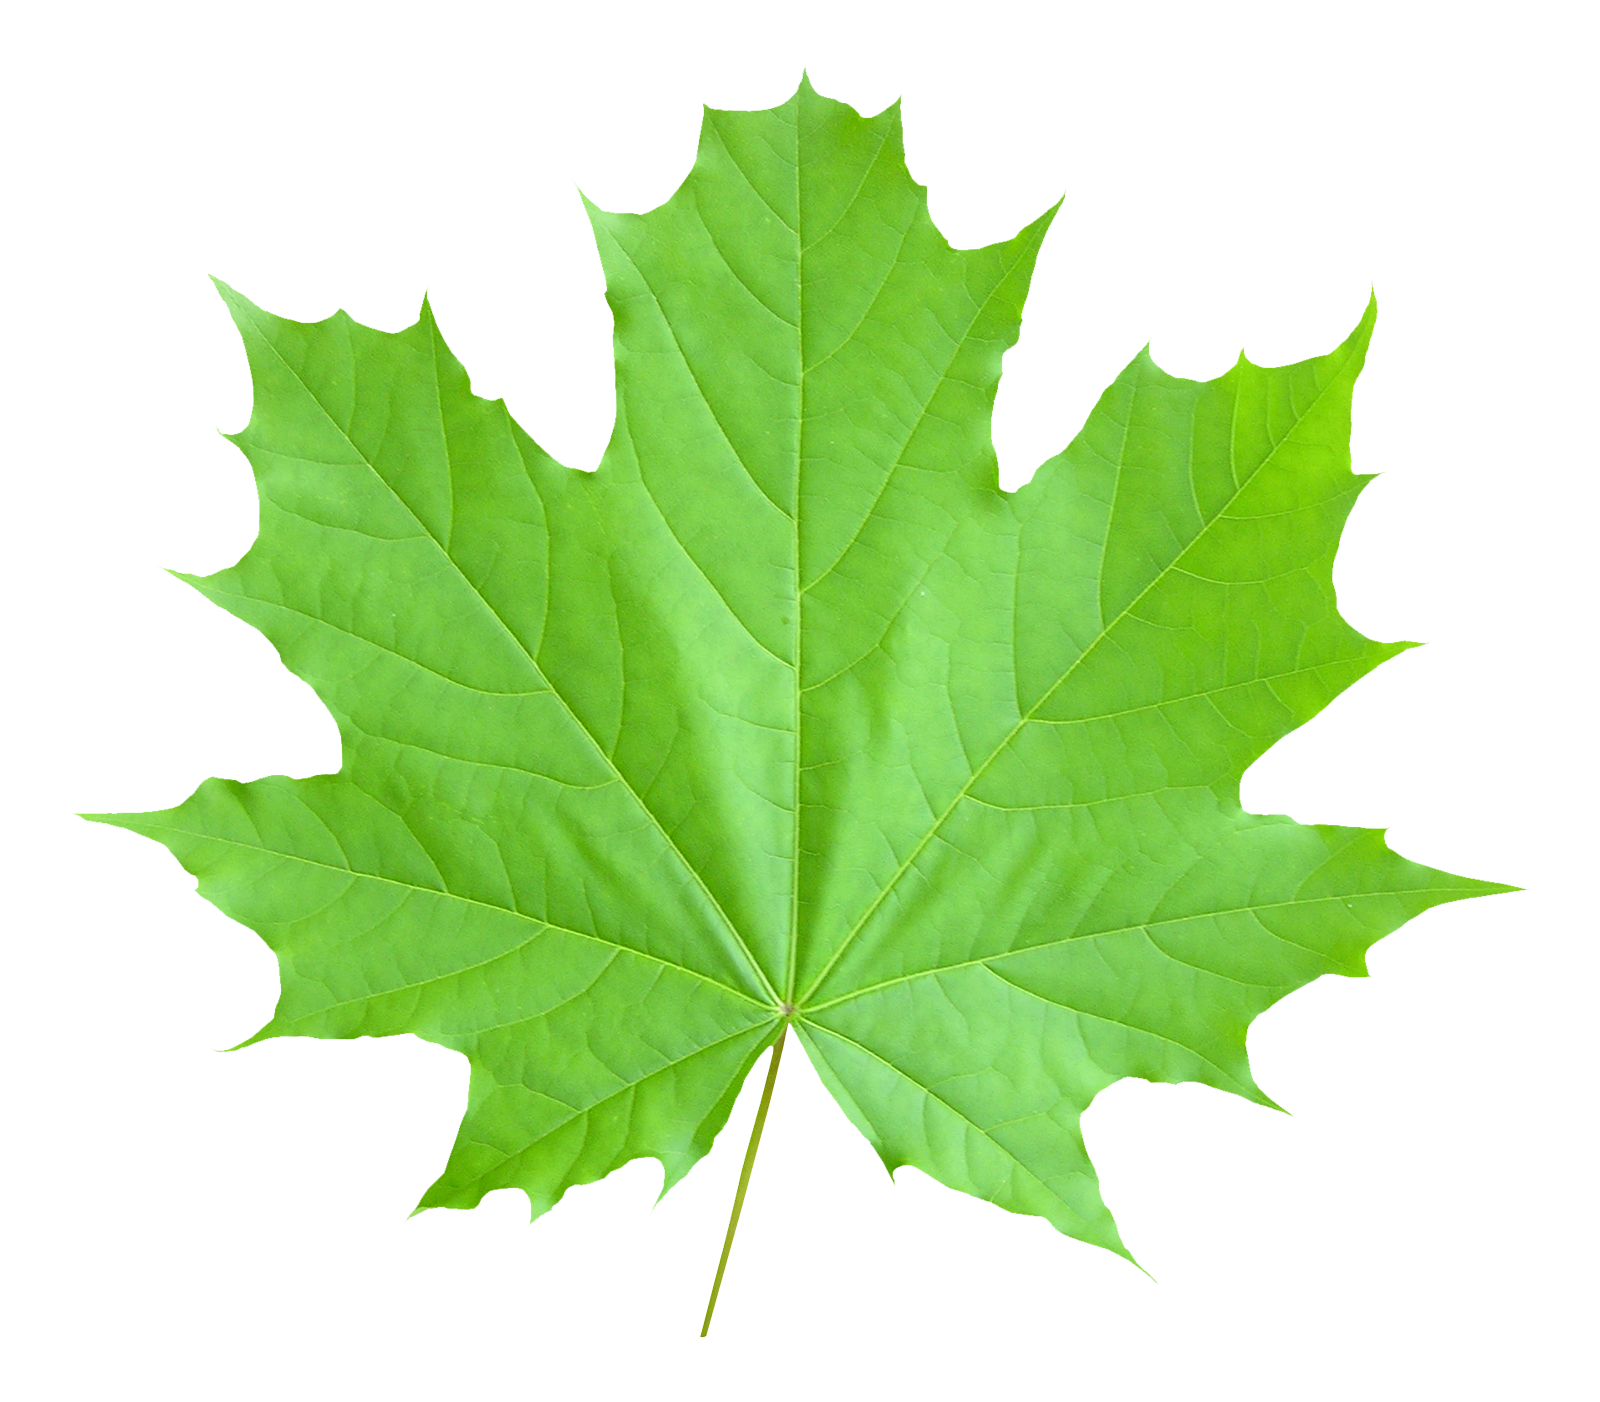 Png Leaf - Maple Leaf PNG Transparent Image - PngPix